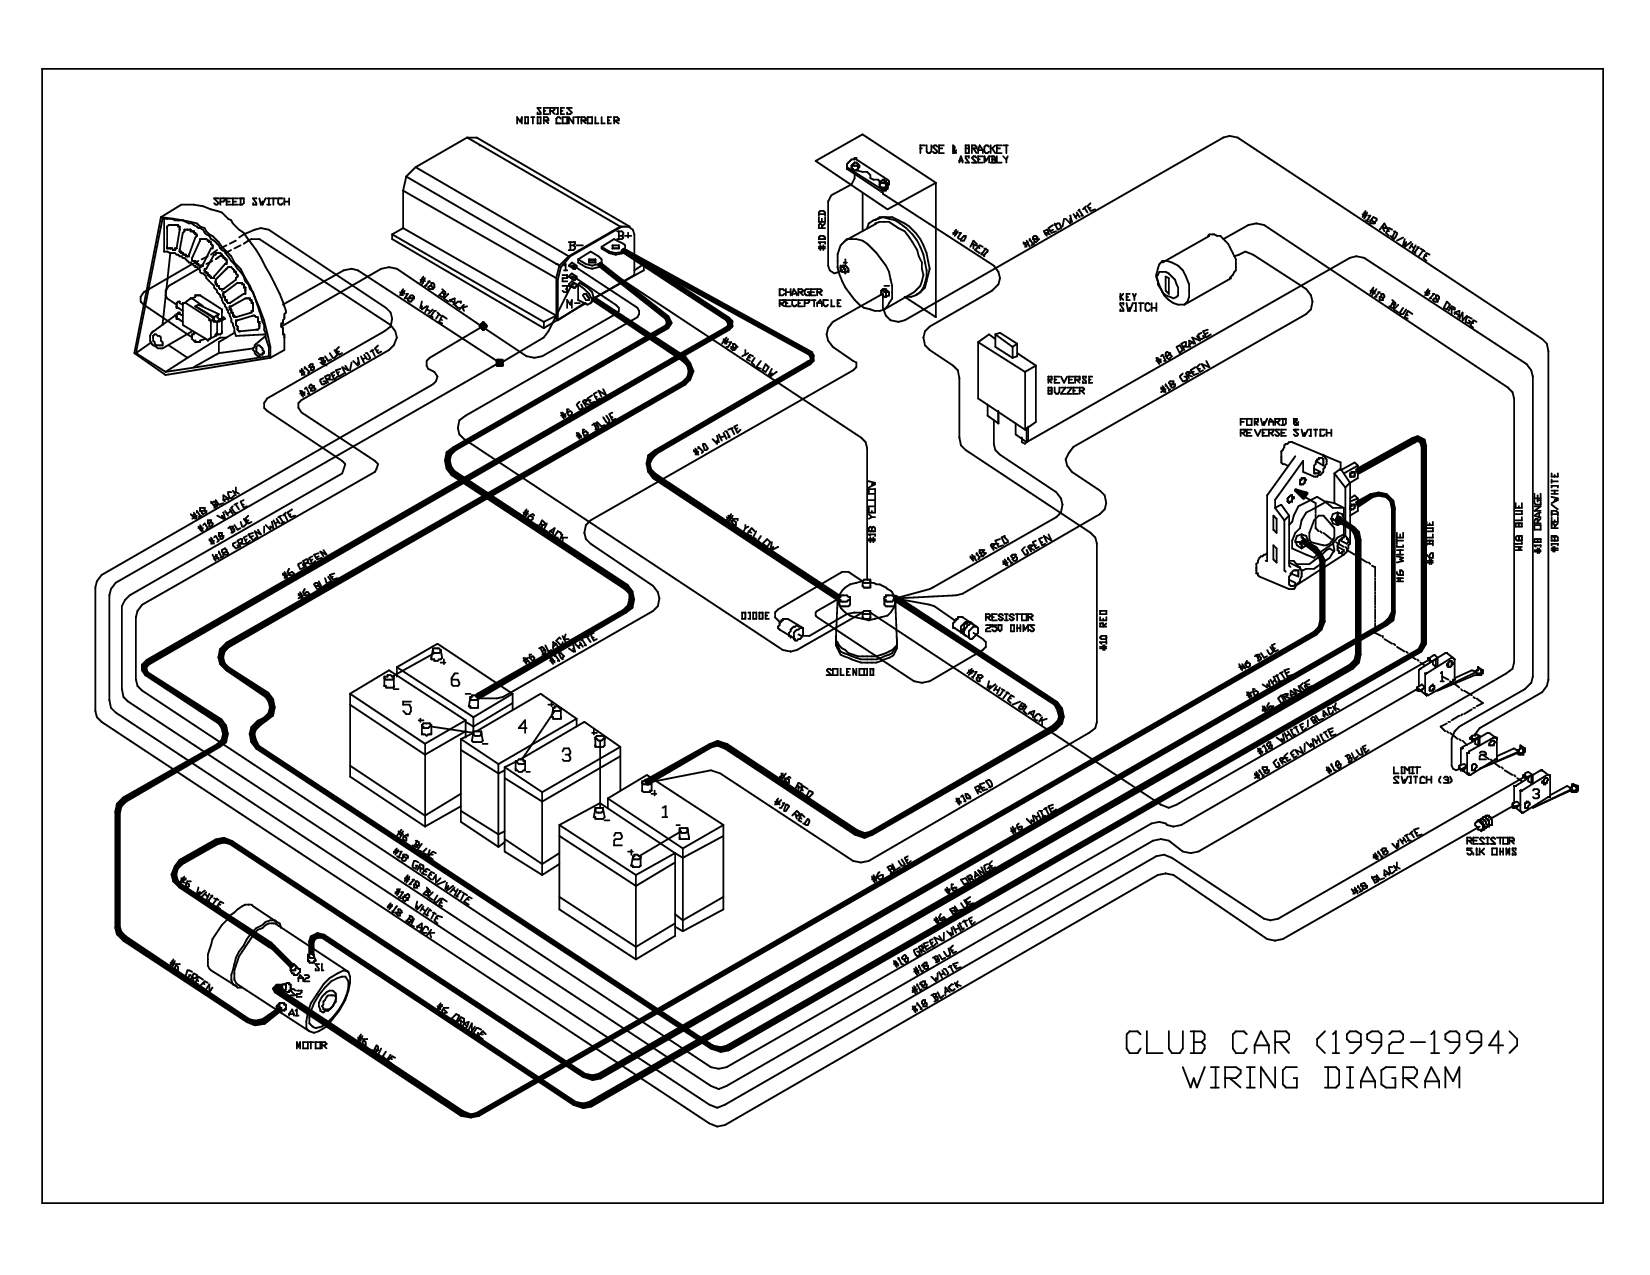 Wiring Diagram 1996 Club Car Solenoid Archive Of Automotive 30 40le Transmission 1995 Schematics Rh Thyl Co Uk